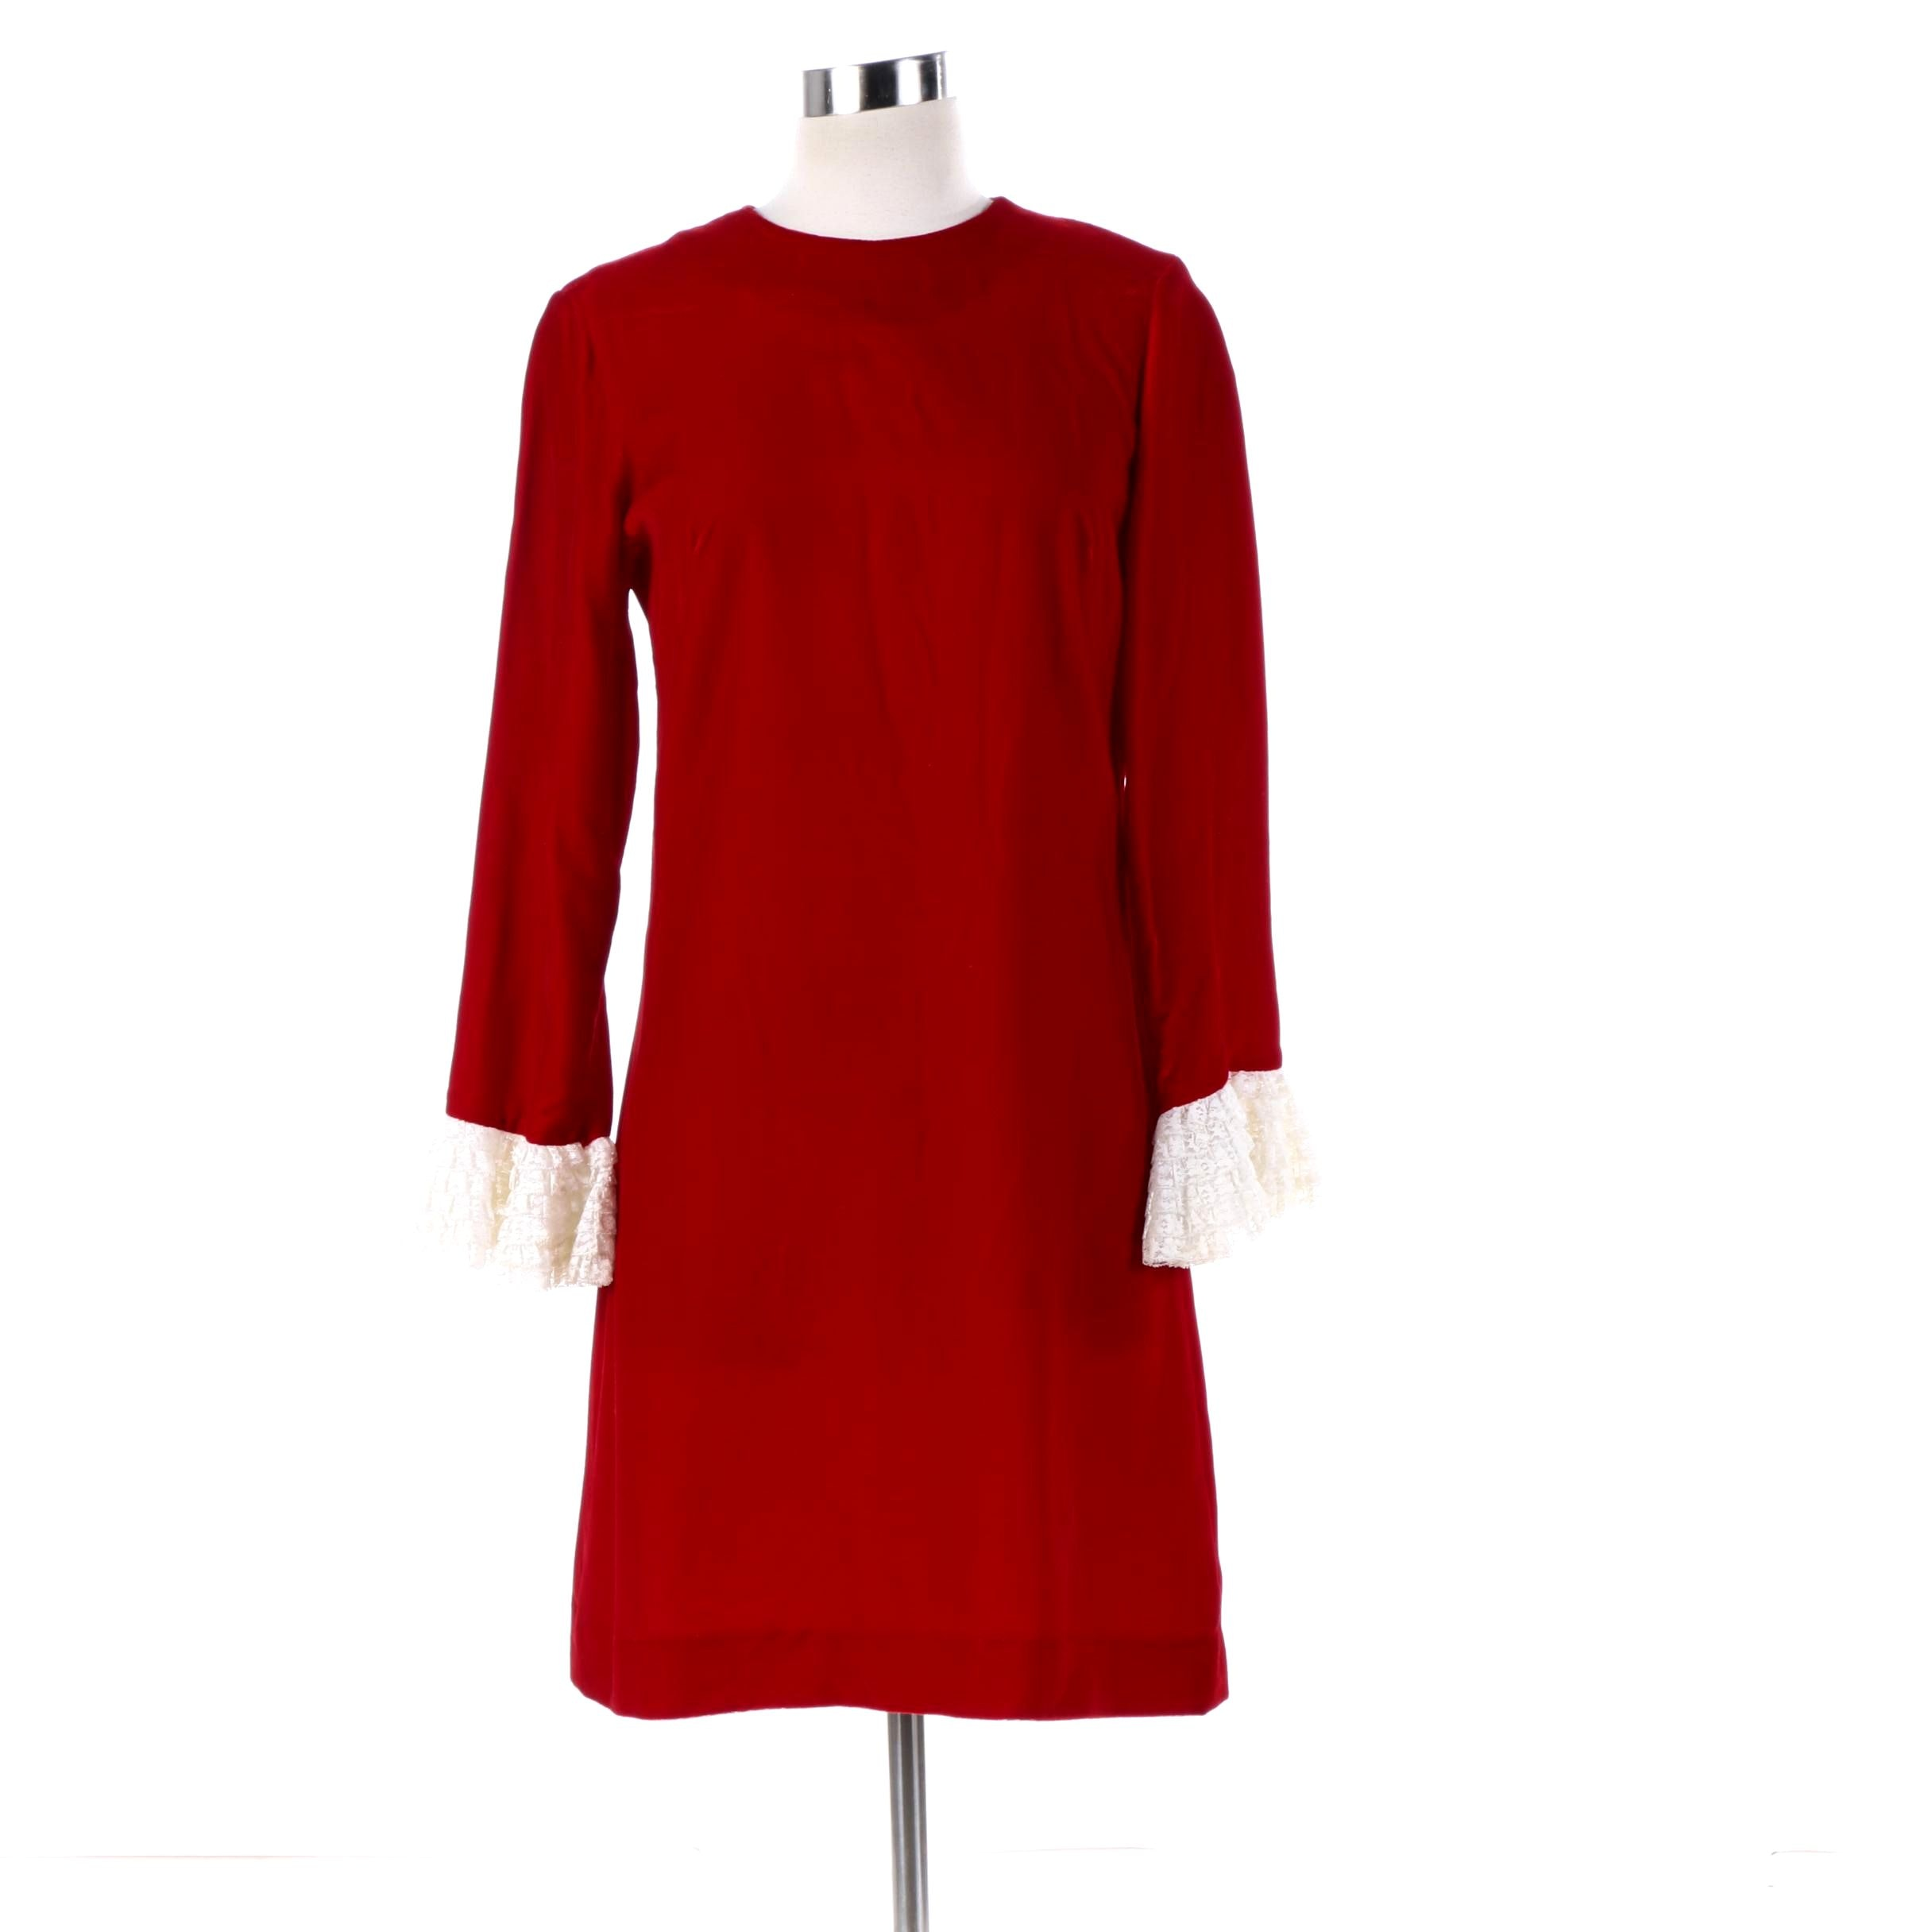 Circa 1960s Vintage Teena Paige Red Velvet Dress with Lace Ruffle Sleeve Cuffs